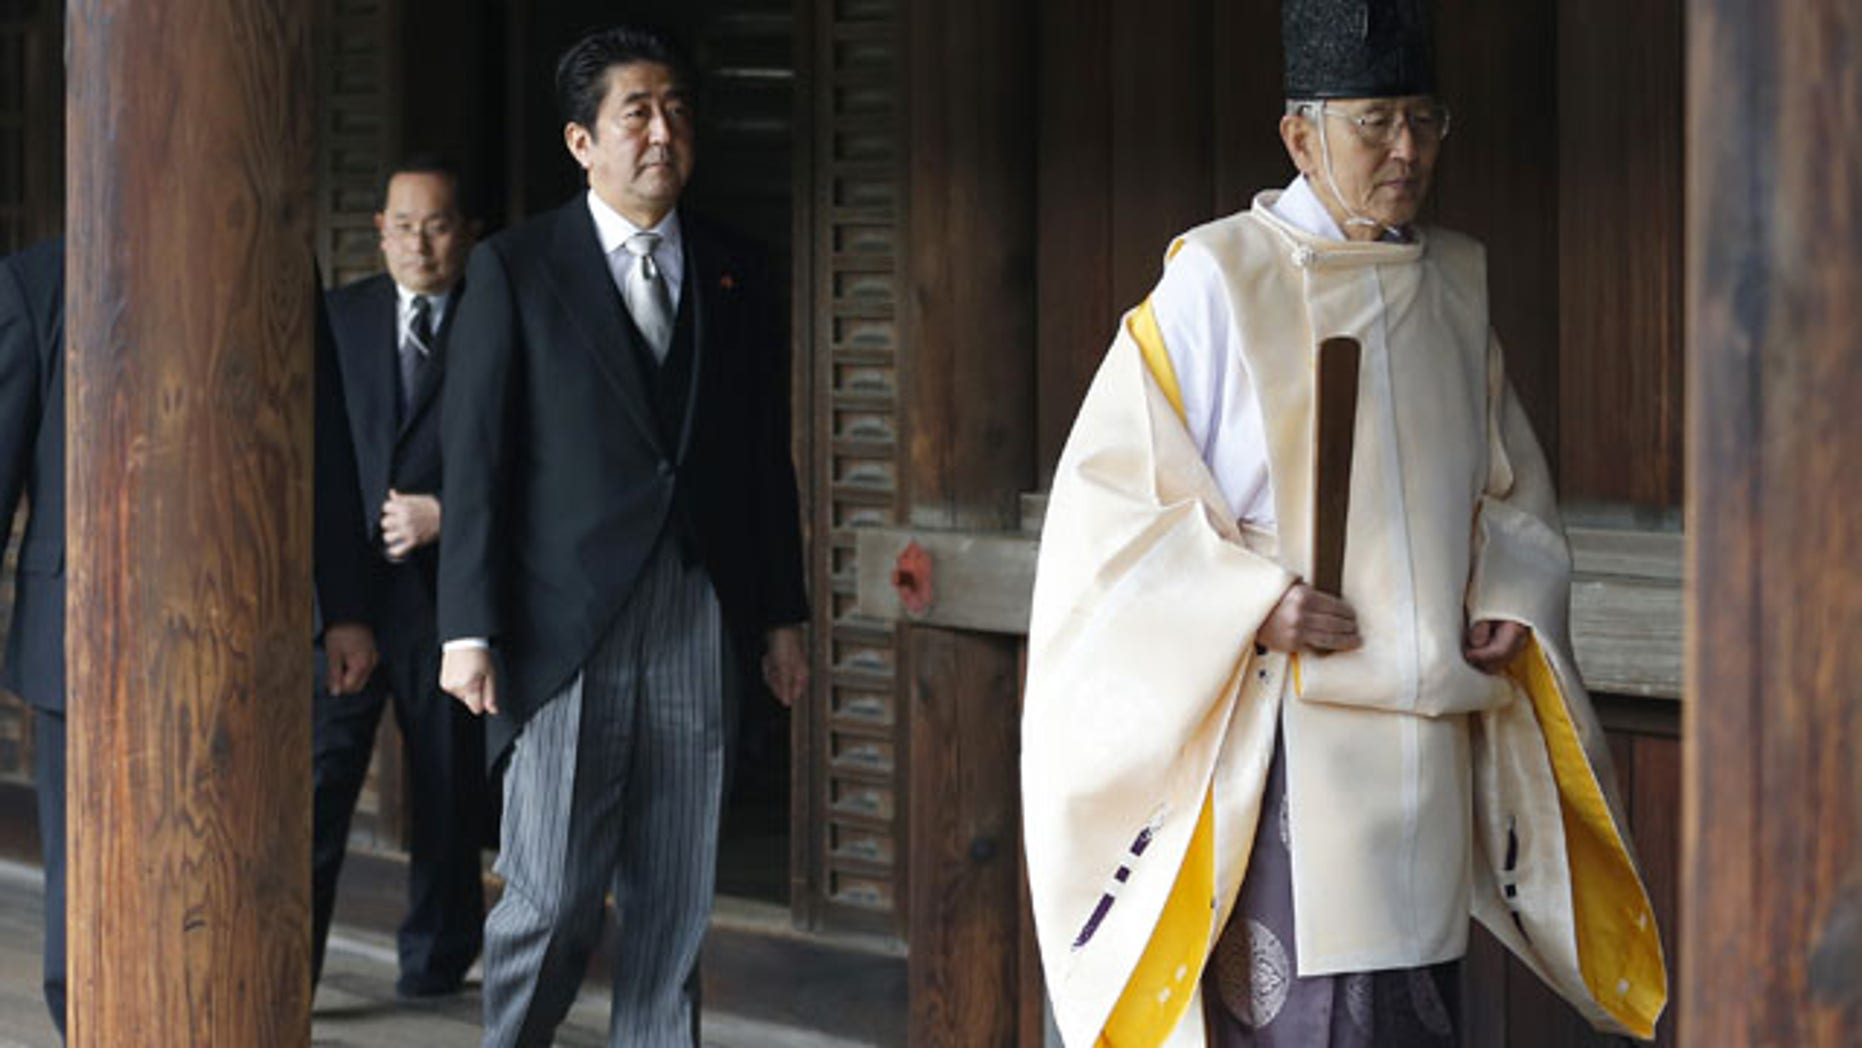 "December 26, 2013: Japanese Prime Minister Shinzo Abe, second from right, follows a Shinto priest to pay respect for the war dead at Yasukuni Shrine in Tokyo. The visit to the shrine, which honors 2.5 million war dead including convicted class A war criminals, appears to be a departure from Abe's ""pragmatic"" approach to foreign policy, in which he tried to avoid alienating neighboring countries. (AP)"